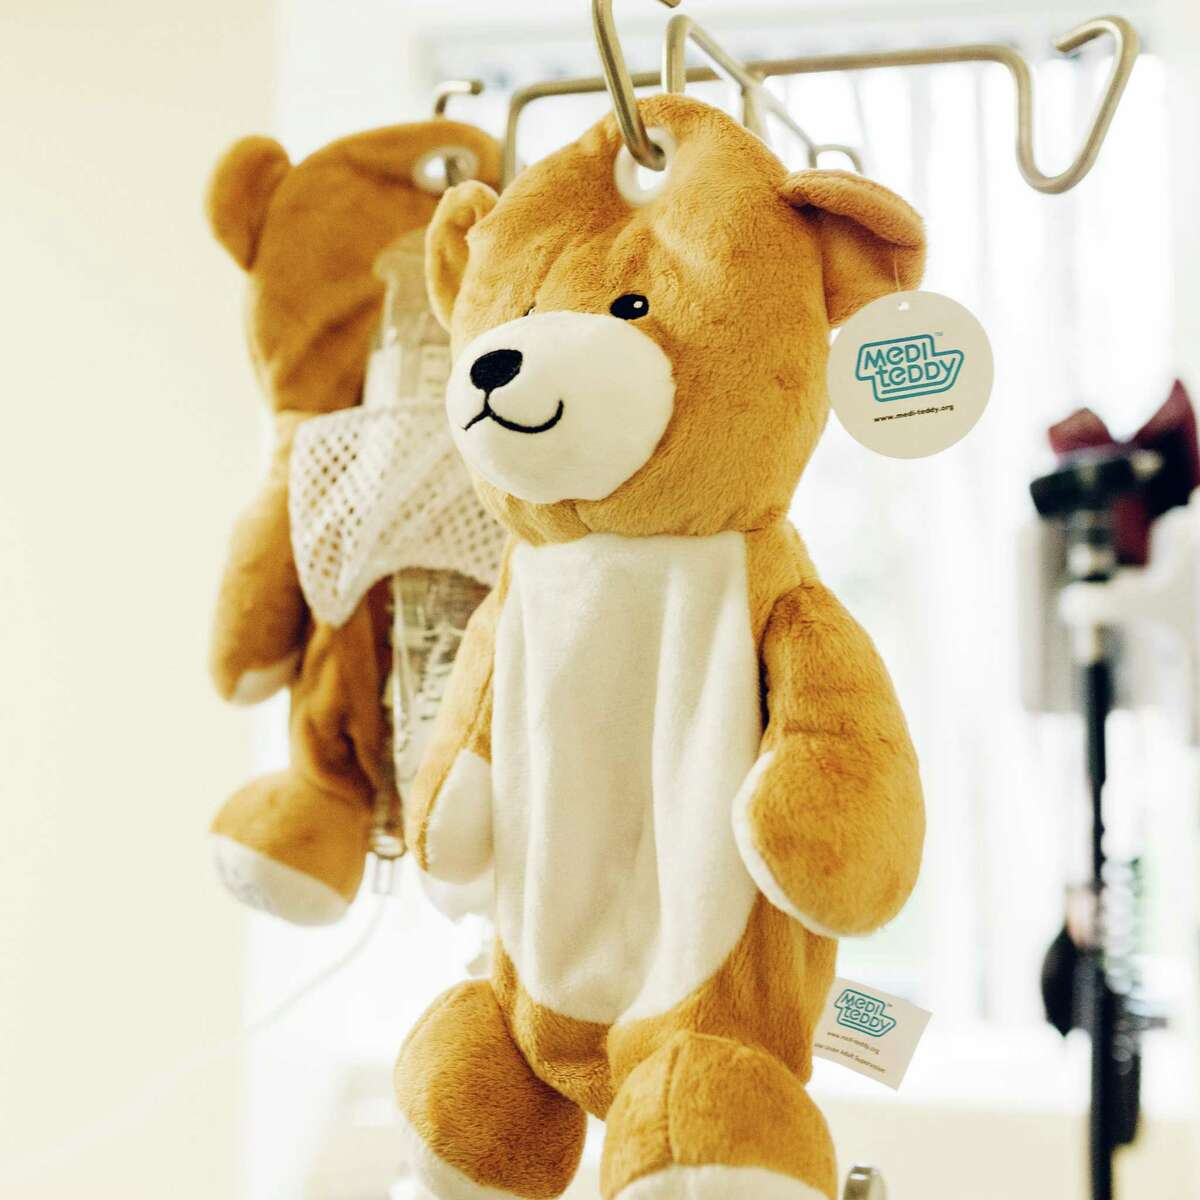 Ella Casano, 13, of Fairfield, created the Medi Teddy to cover IV bags for children who have to undergo treatment that involves regular IV infusions.